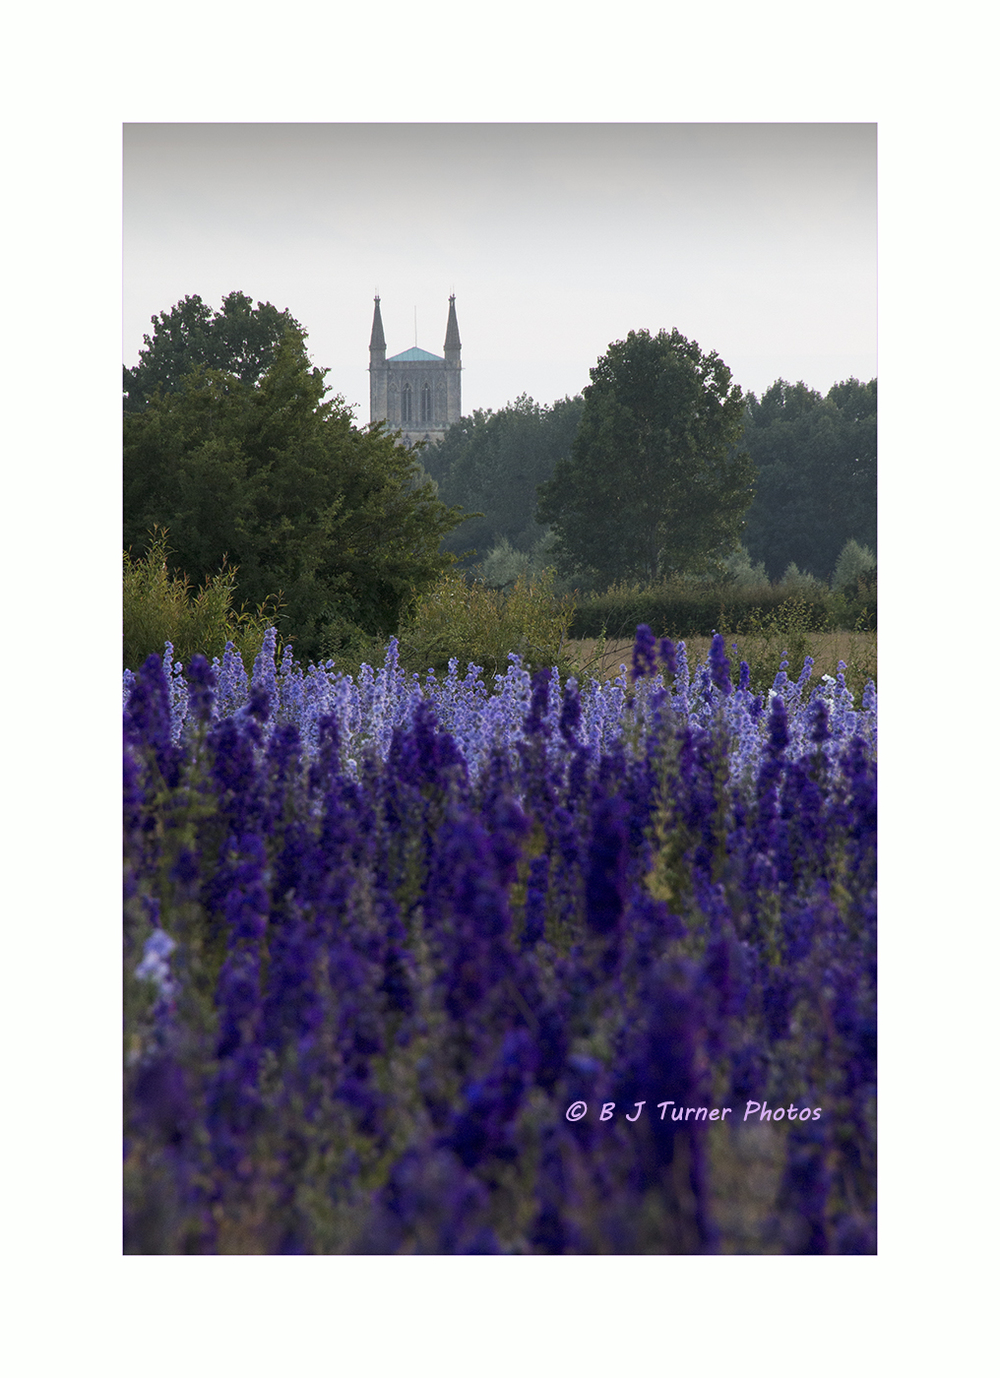 Pershore Abbey with border and copyright_MG_2850.jpg